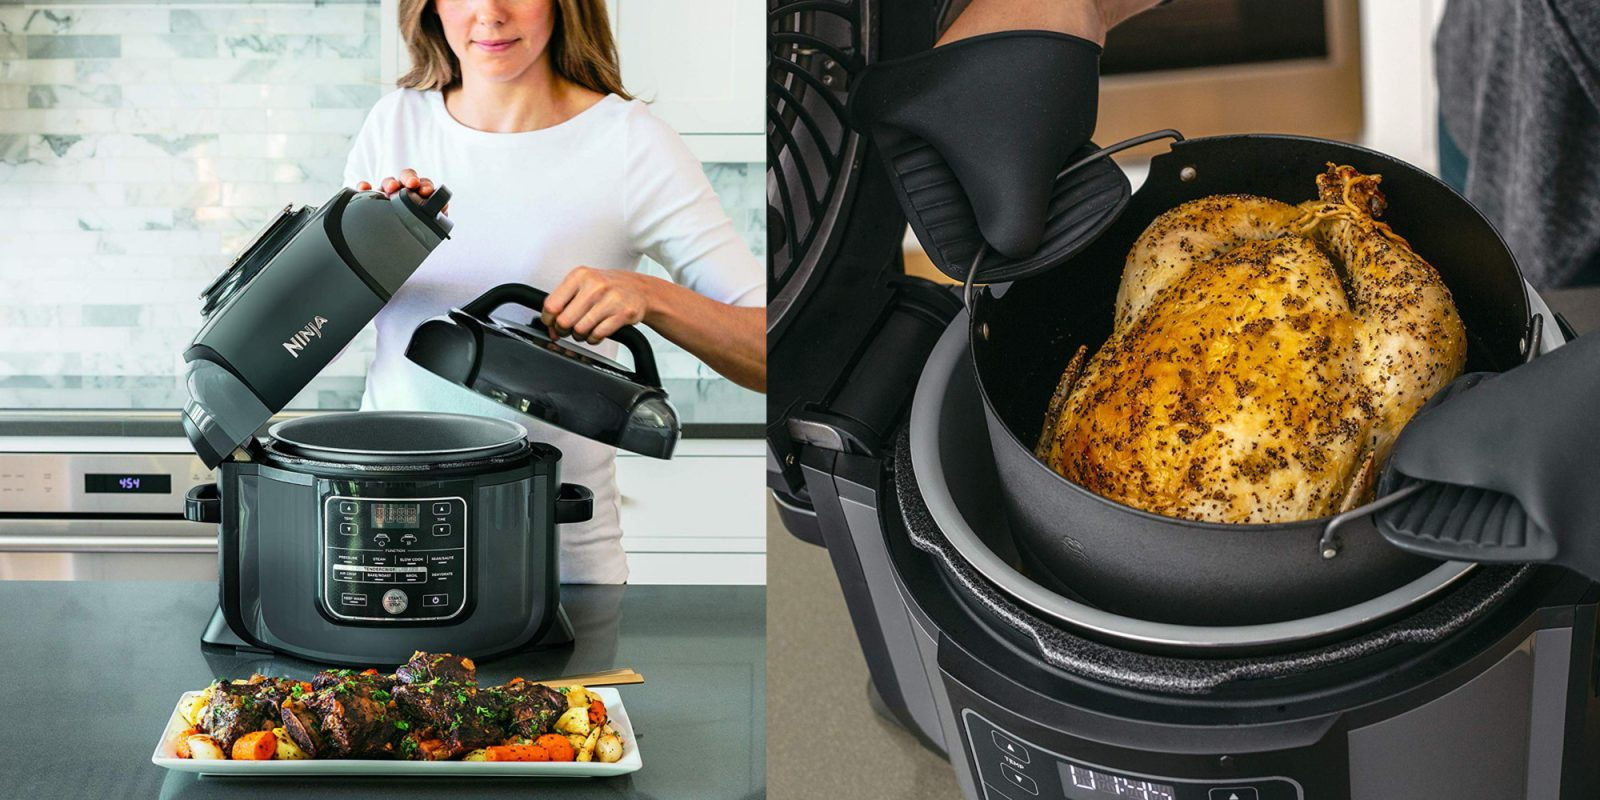 Ninja's Foodi Cooker can air fry and dehydrate for $120 (Refurb, Orig. $280)